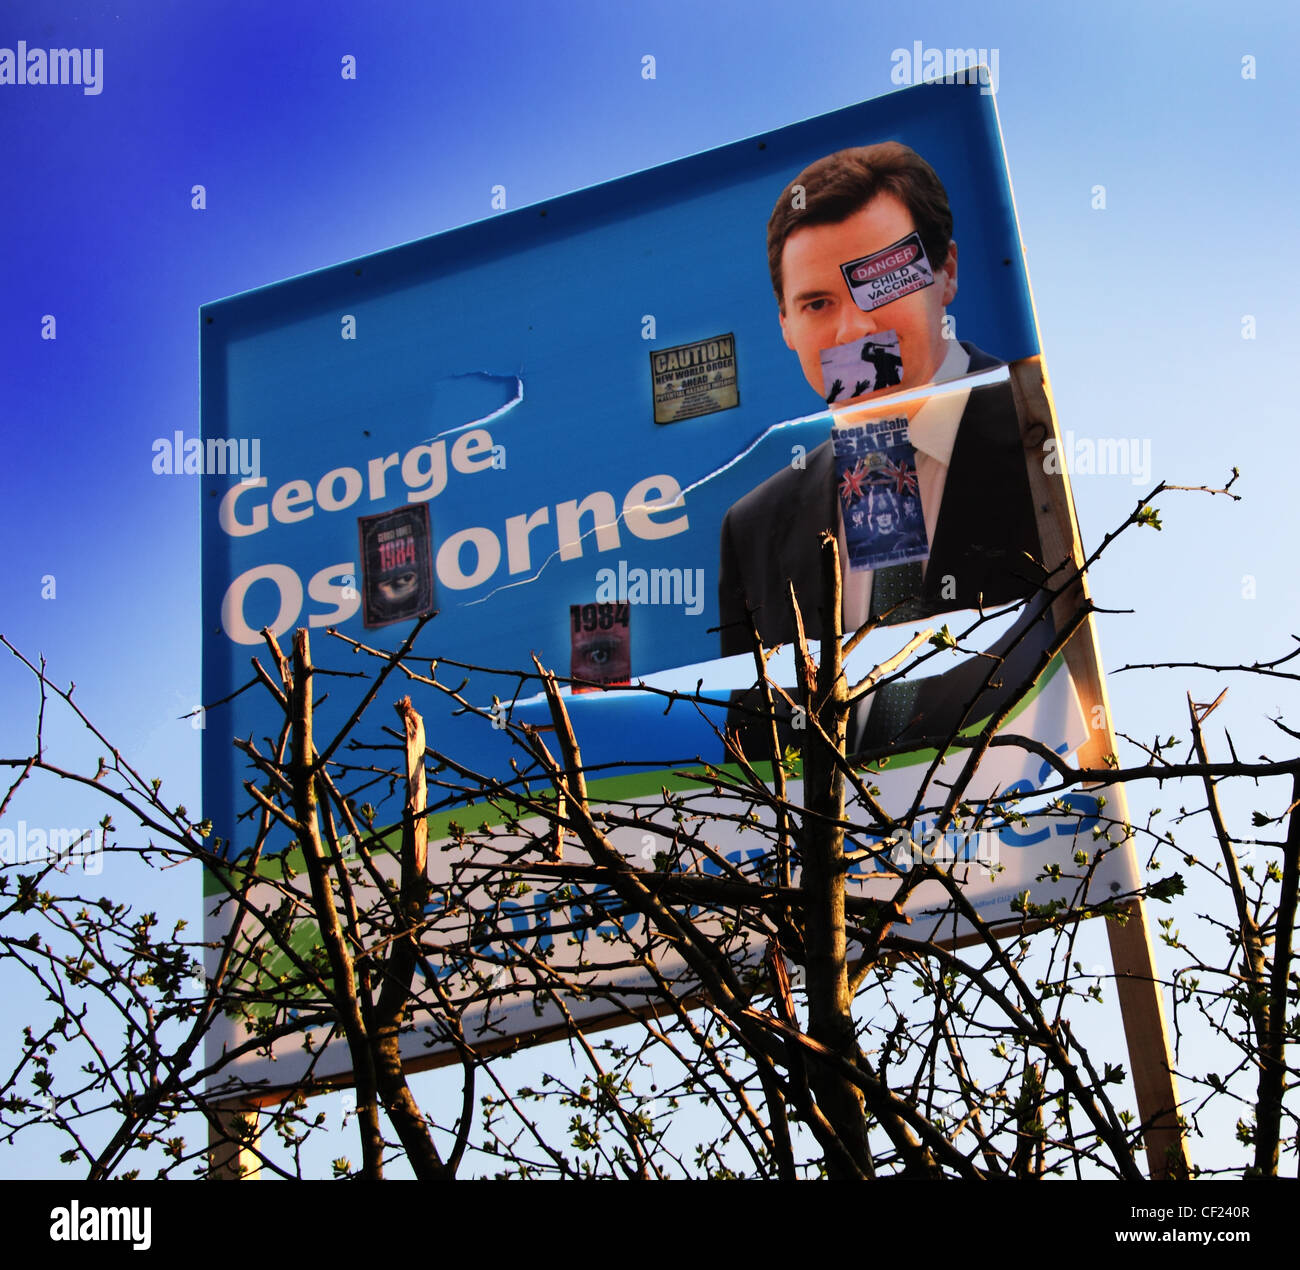 Defaced Apr 2010 Election Poster for George Gideon Osbourne now elected MP and Conservative Chancellor for Tatton - Stock Image